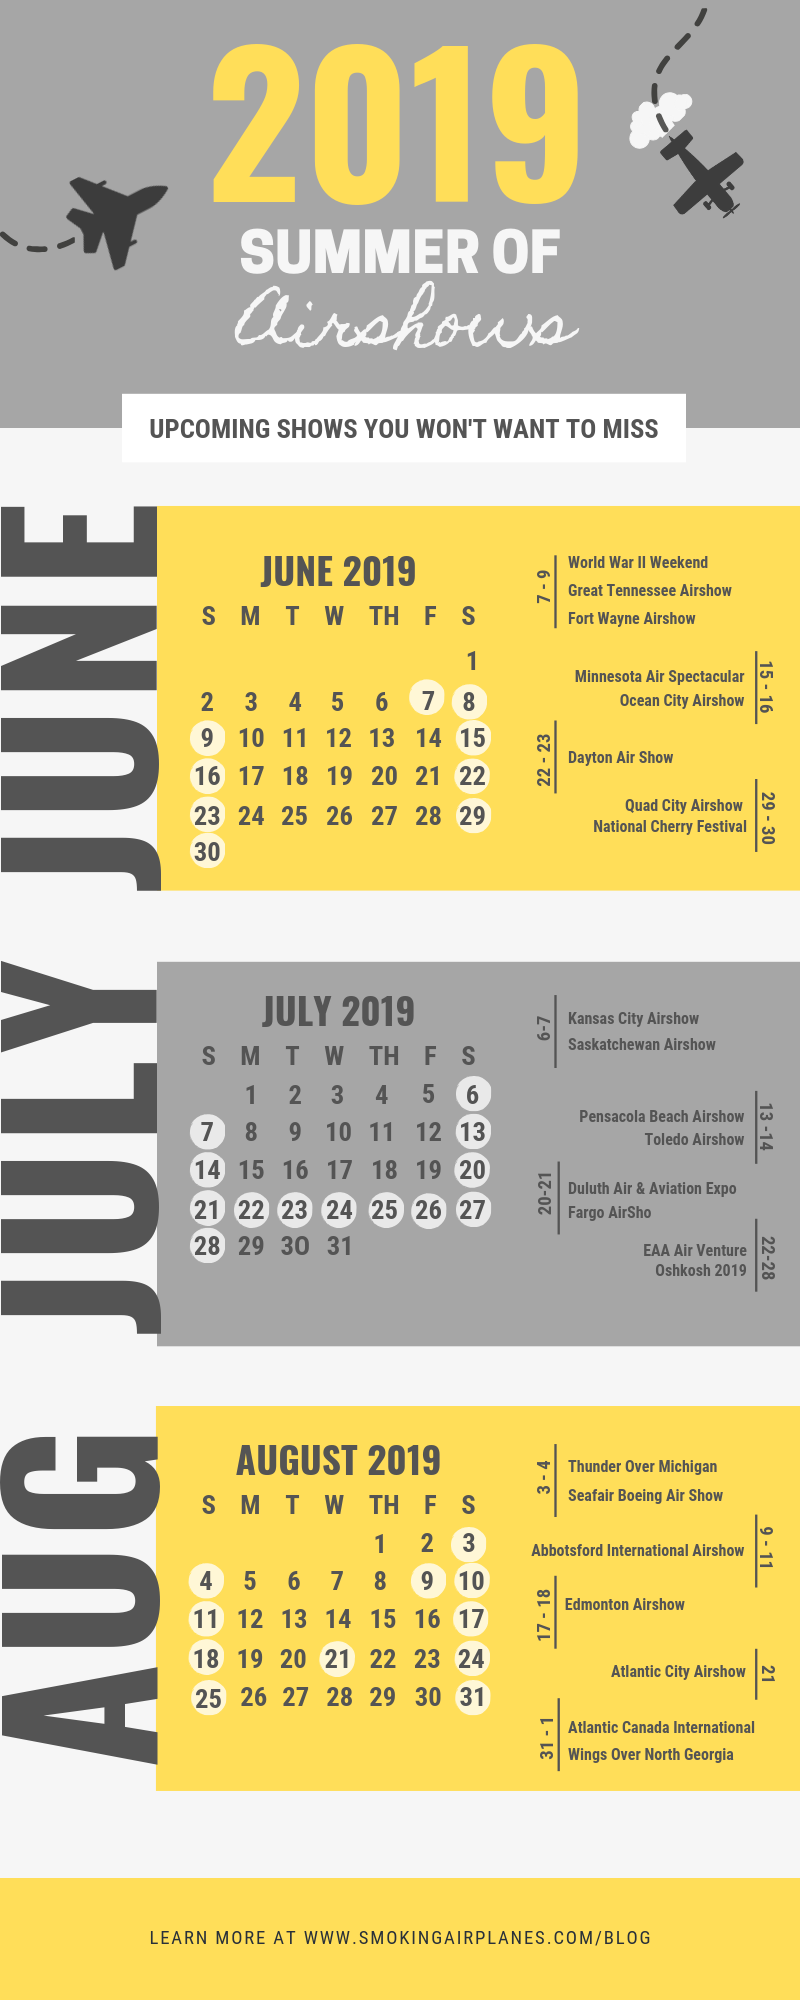 Summer 2019 Airshows Infographic